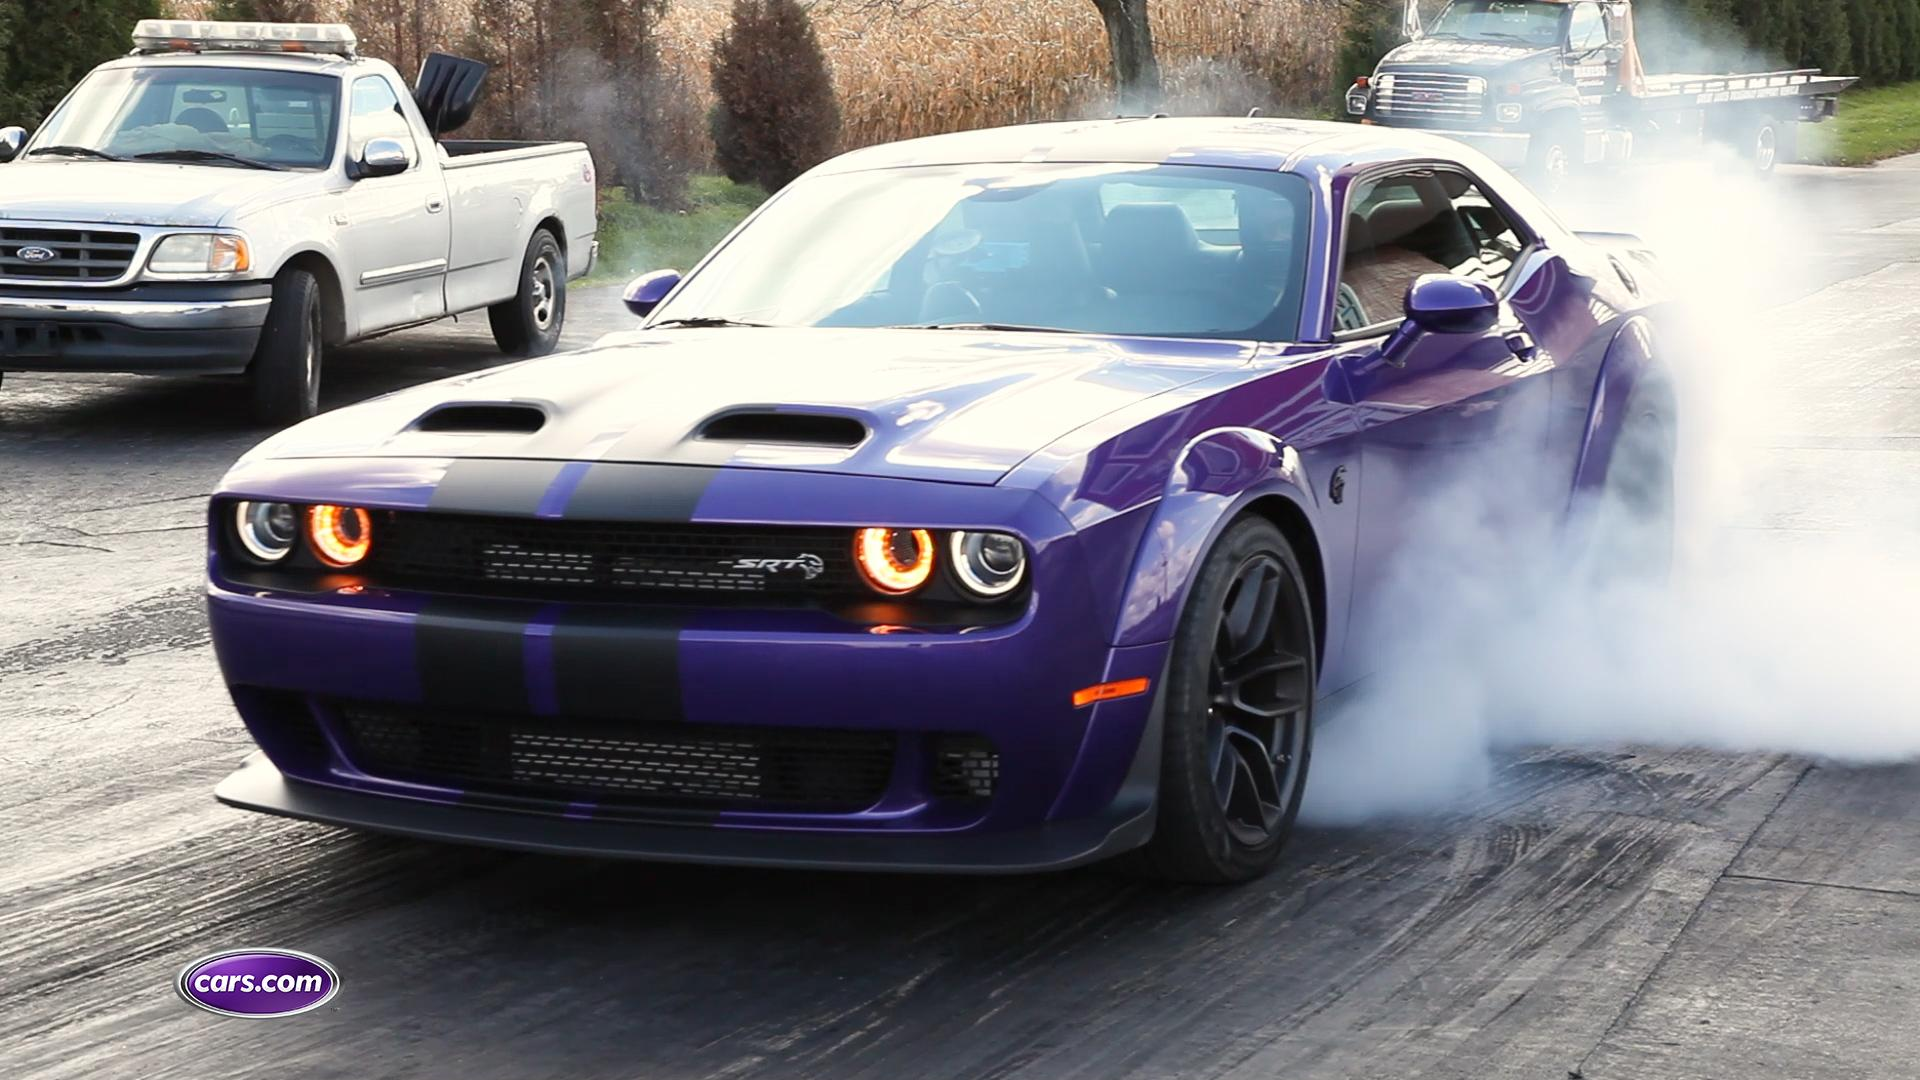 2019 Dodge Challenger Srt Hellcat Redeye Legit 10 Second Stock Car Dragtimes Com Drag Racing Fast Cars Muscle Cars Blog